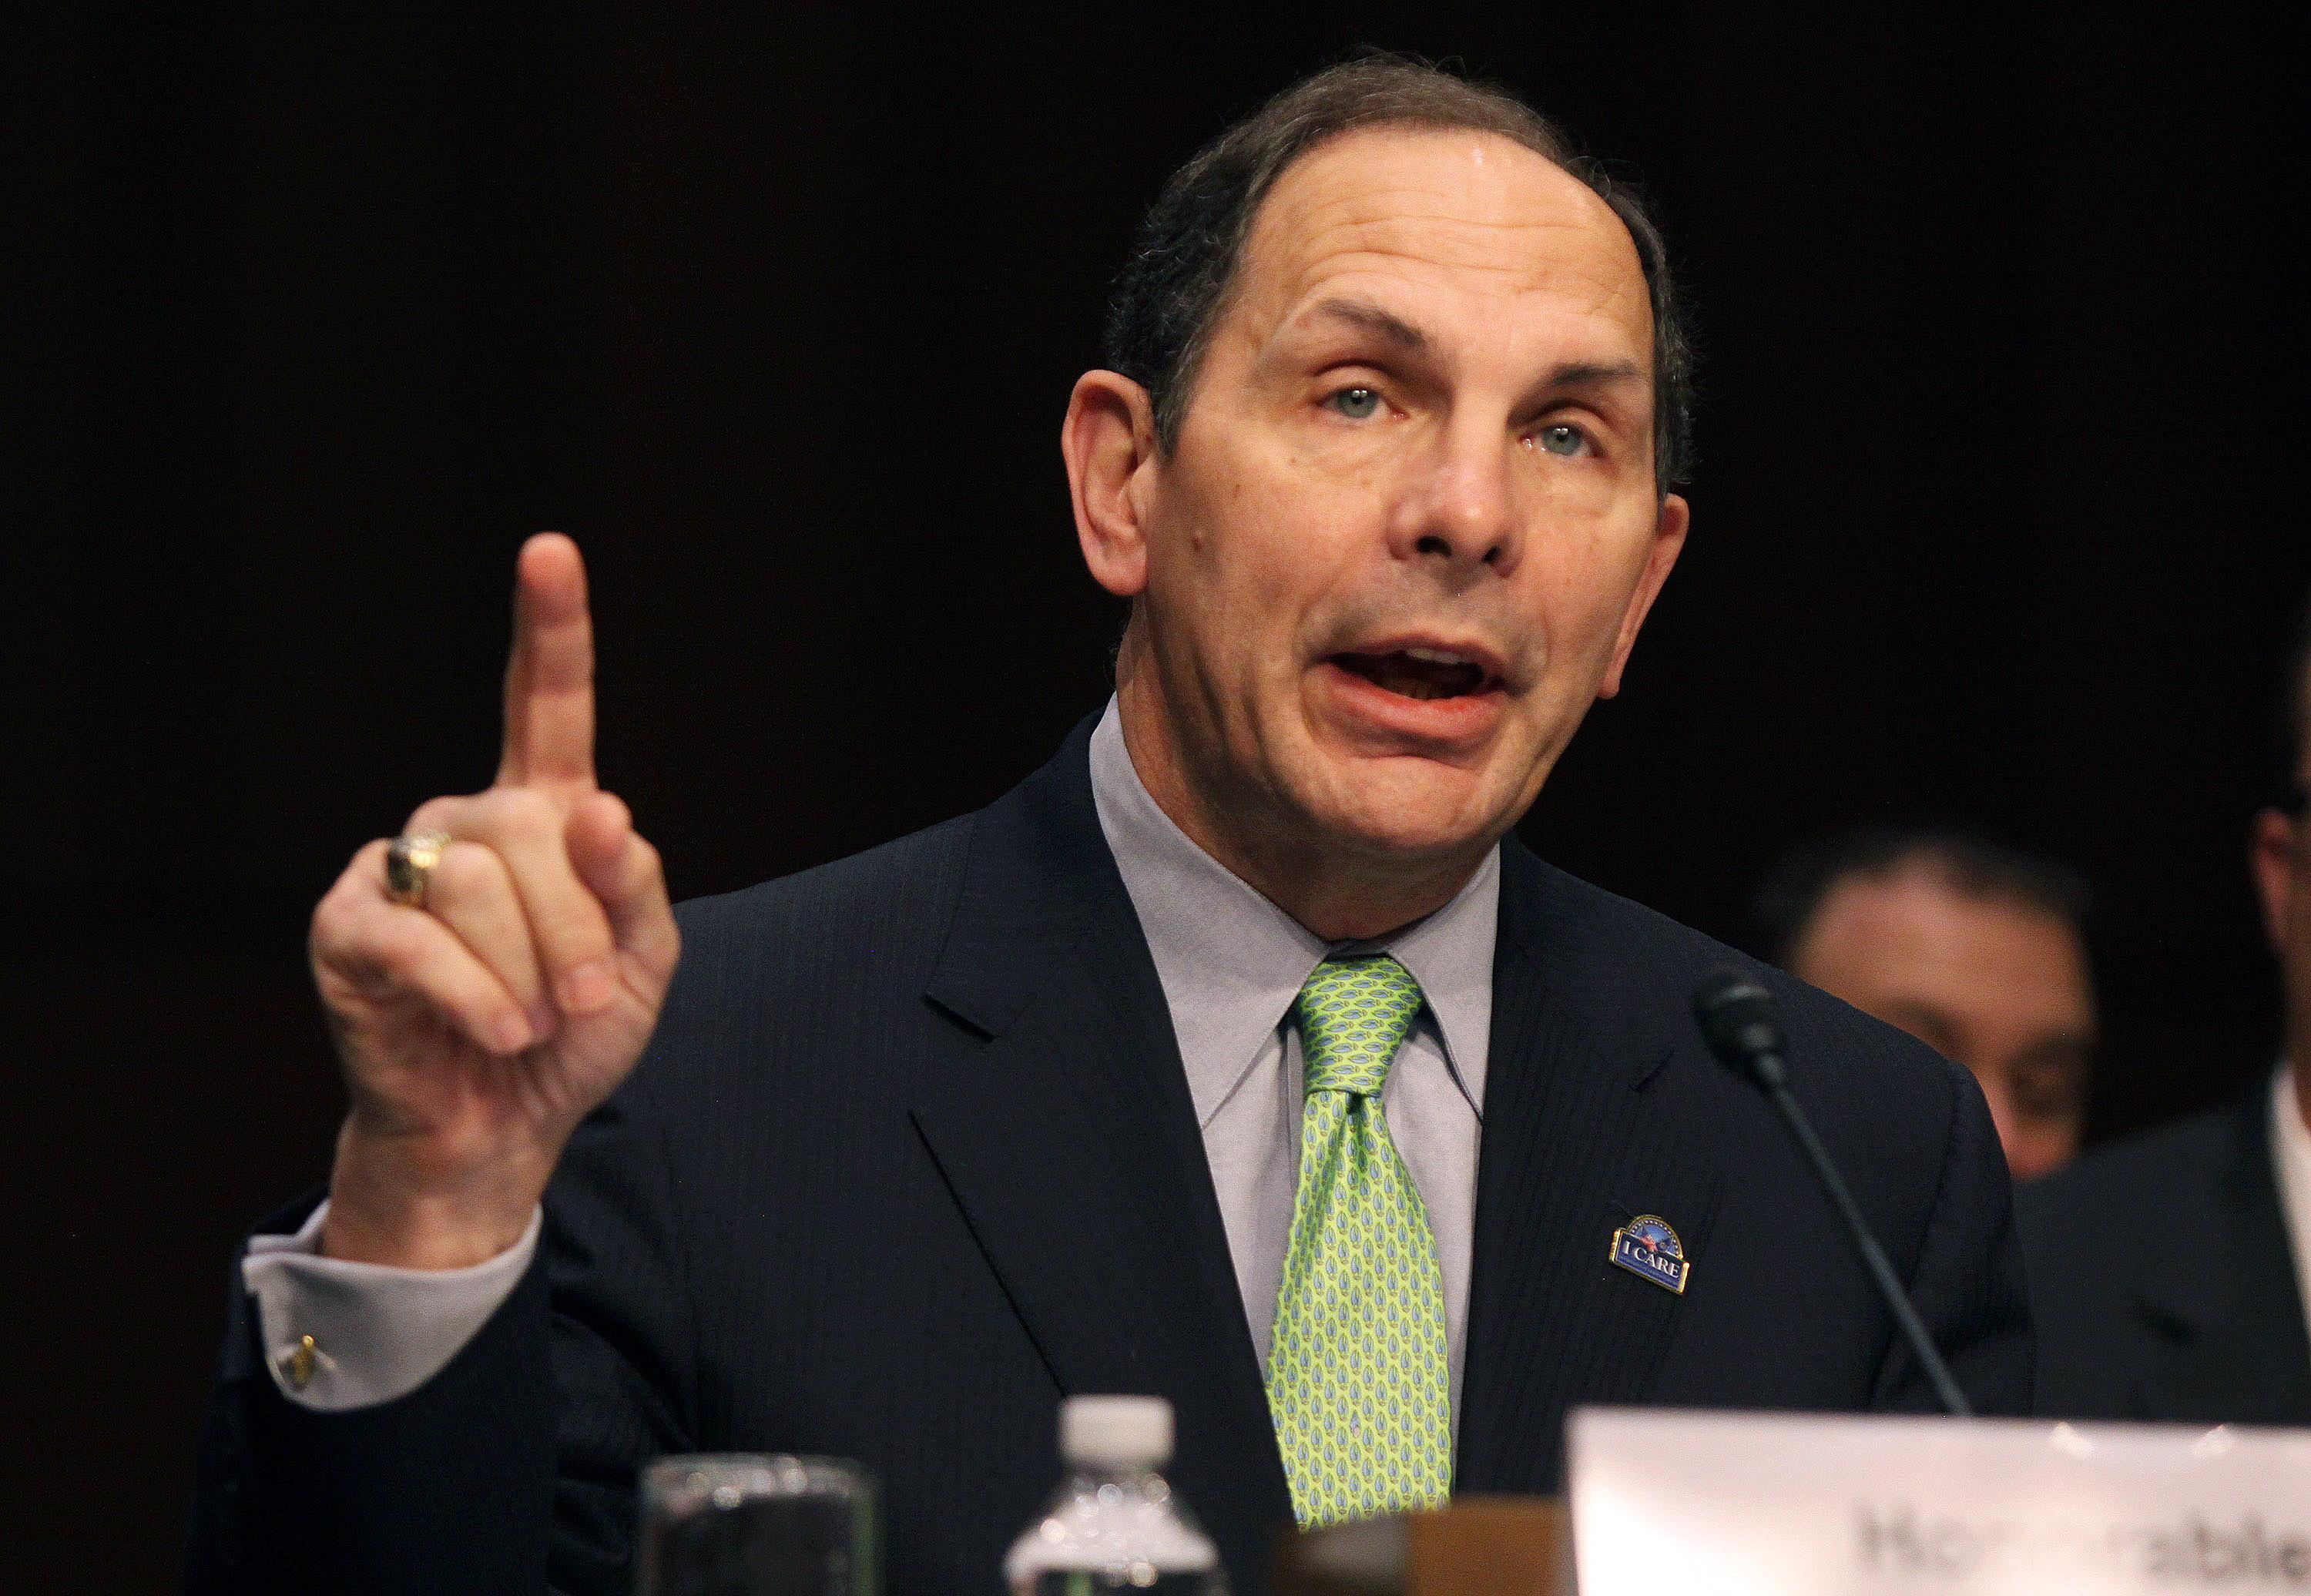 VA says it will relax 40-mile rule for private medical care